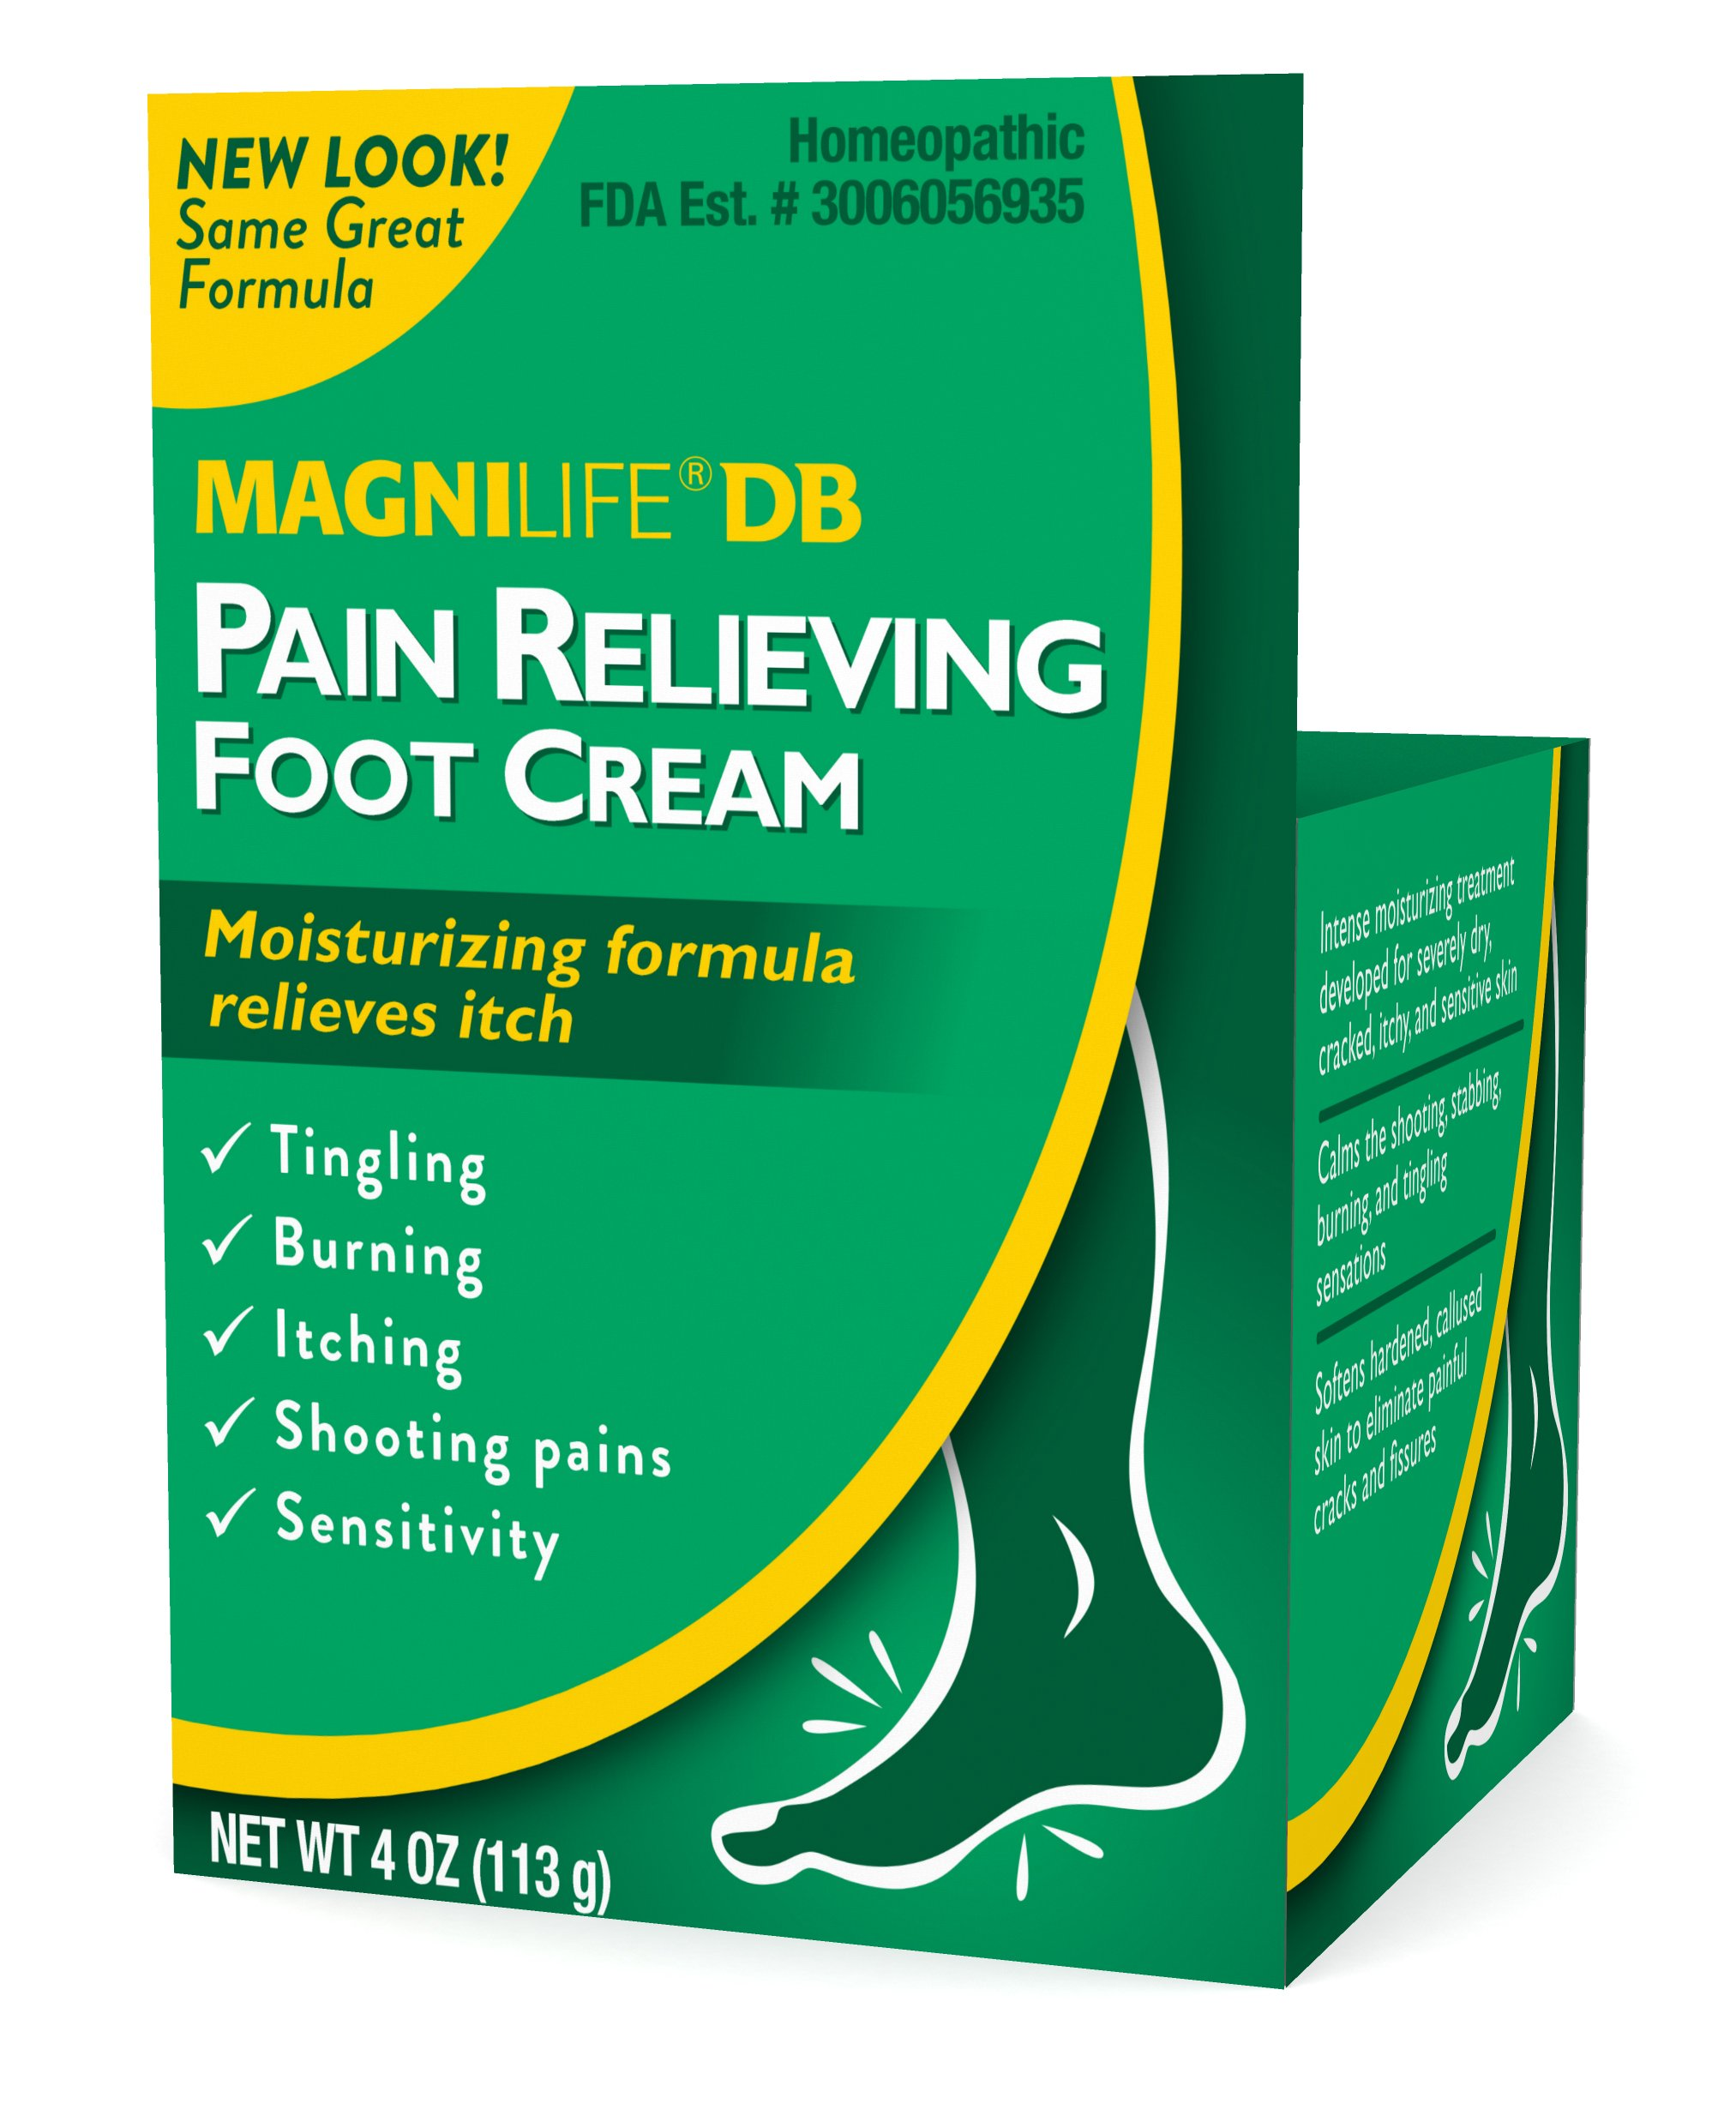 MagniLife DB Diabetes Pain Relieving Foot Cream Burning, Stabbing, Swelling, Dry Skin Relief